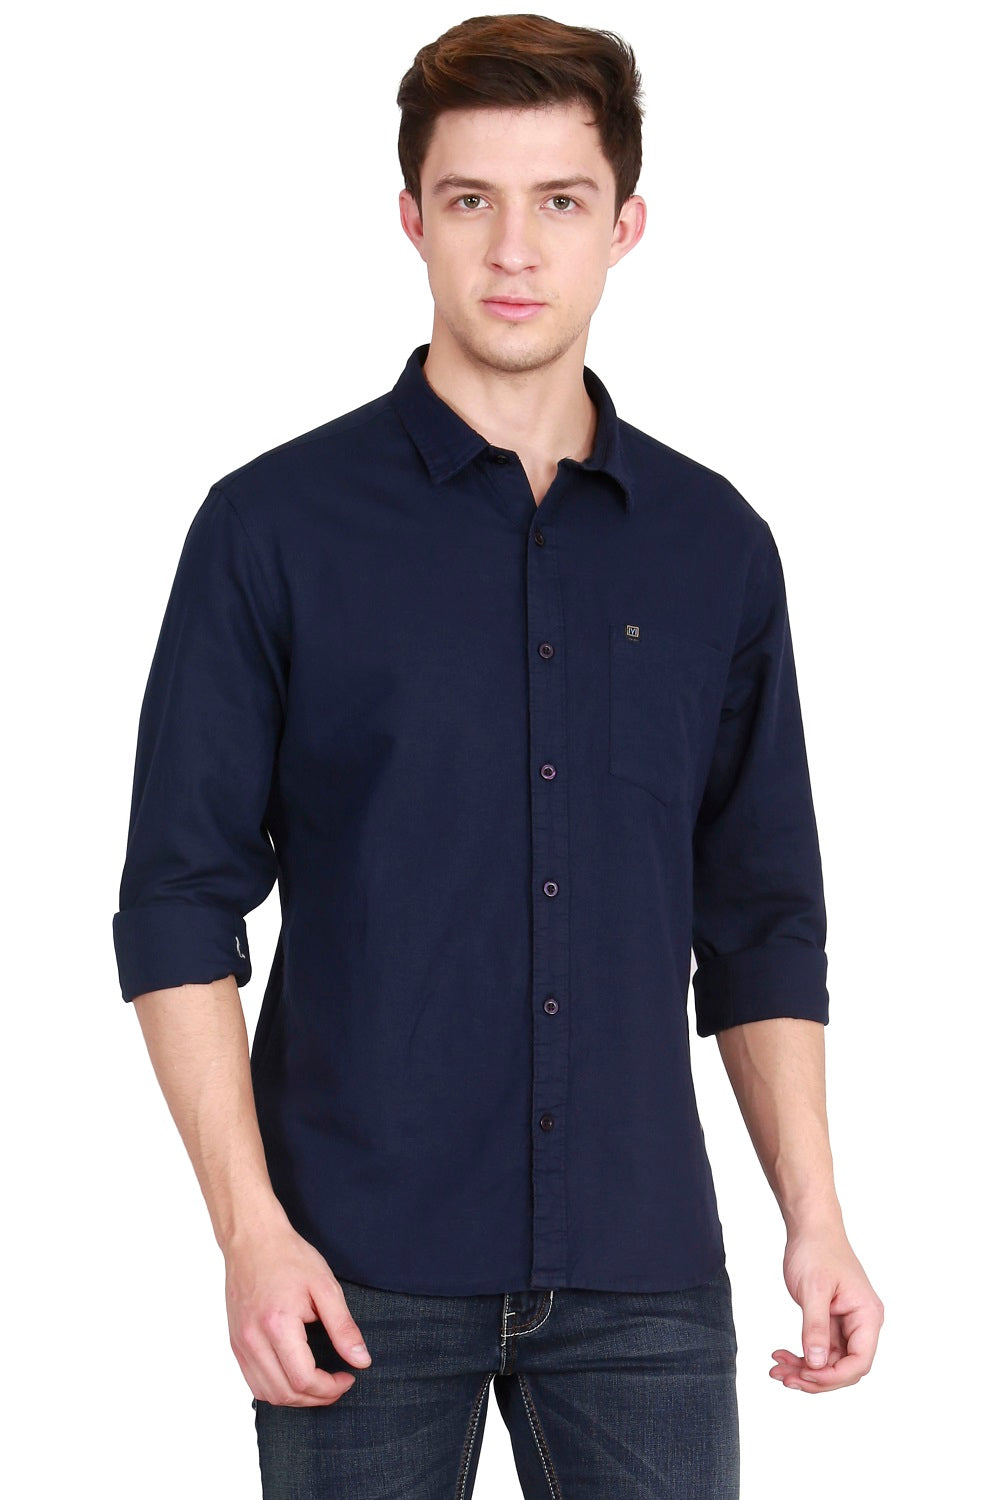 IMYOUNG Men's Solid Navy Blue Cotton Linen Casual Shirt